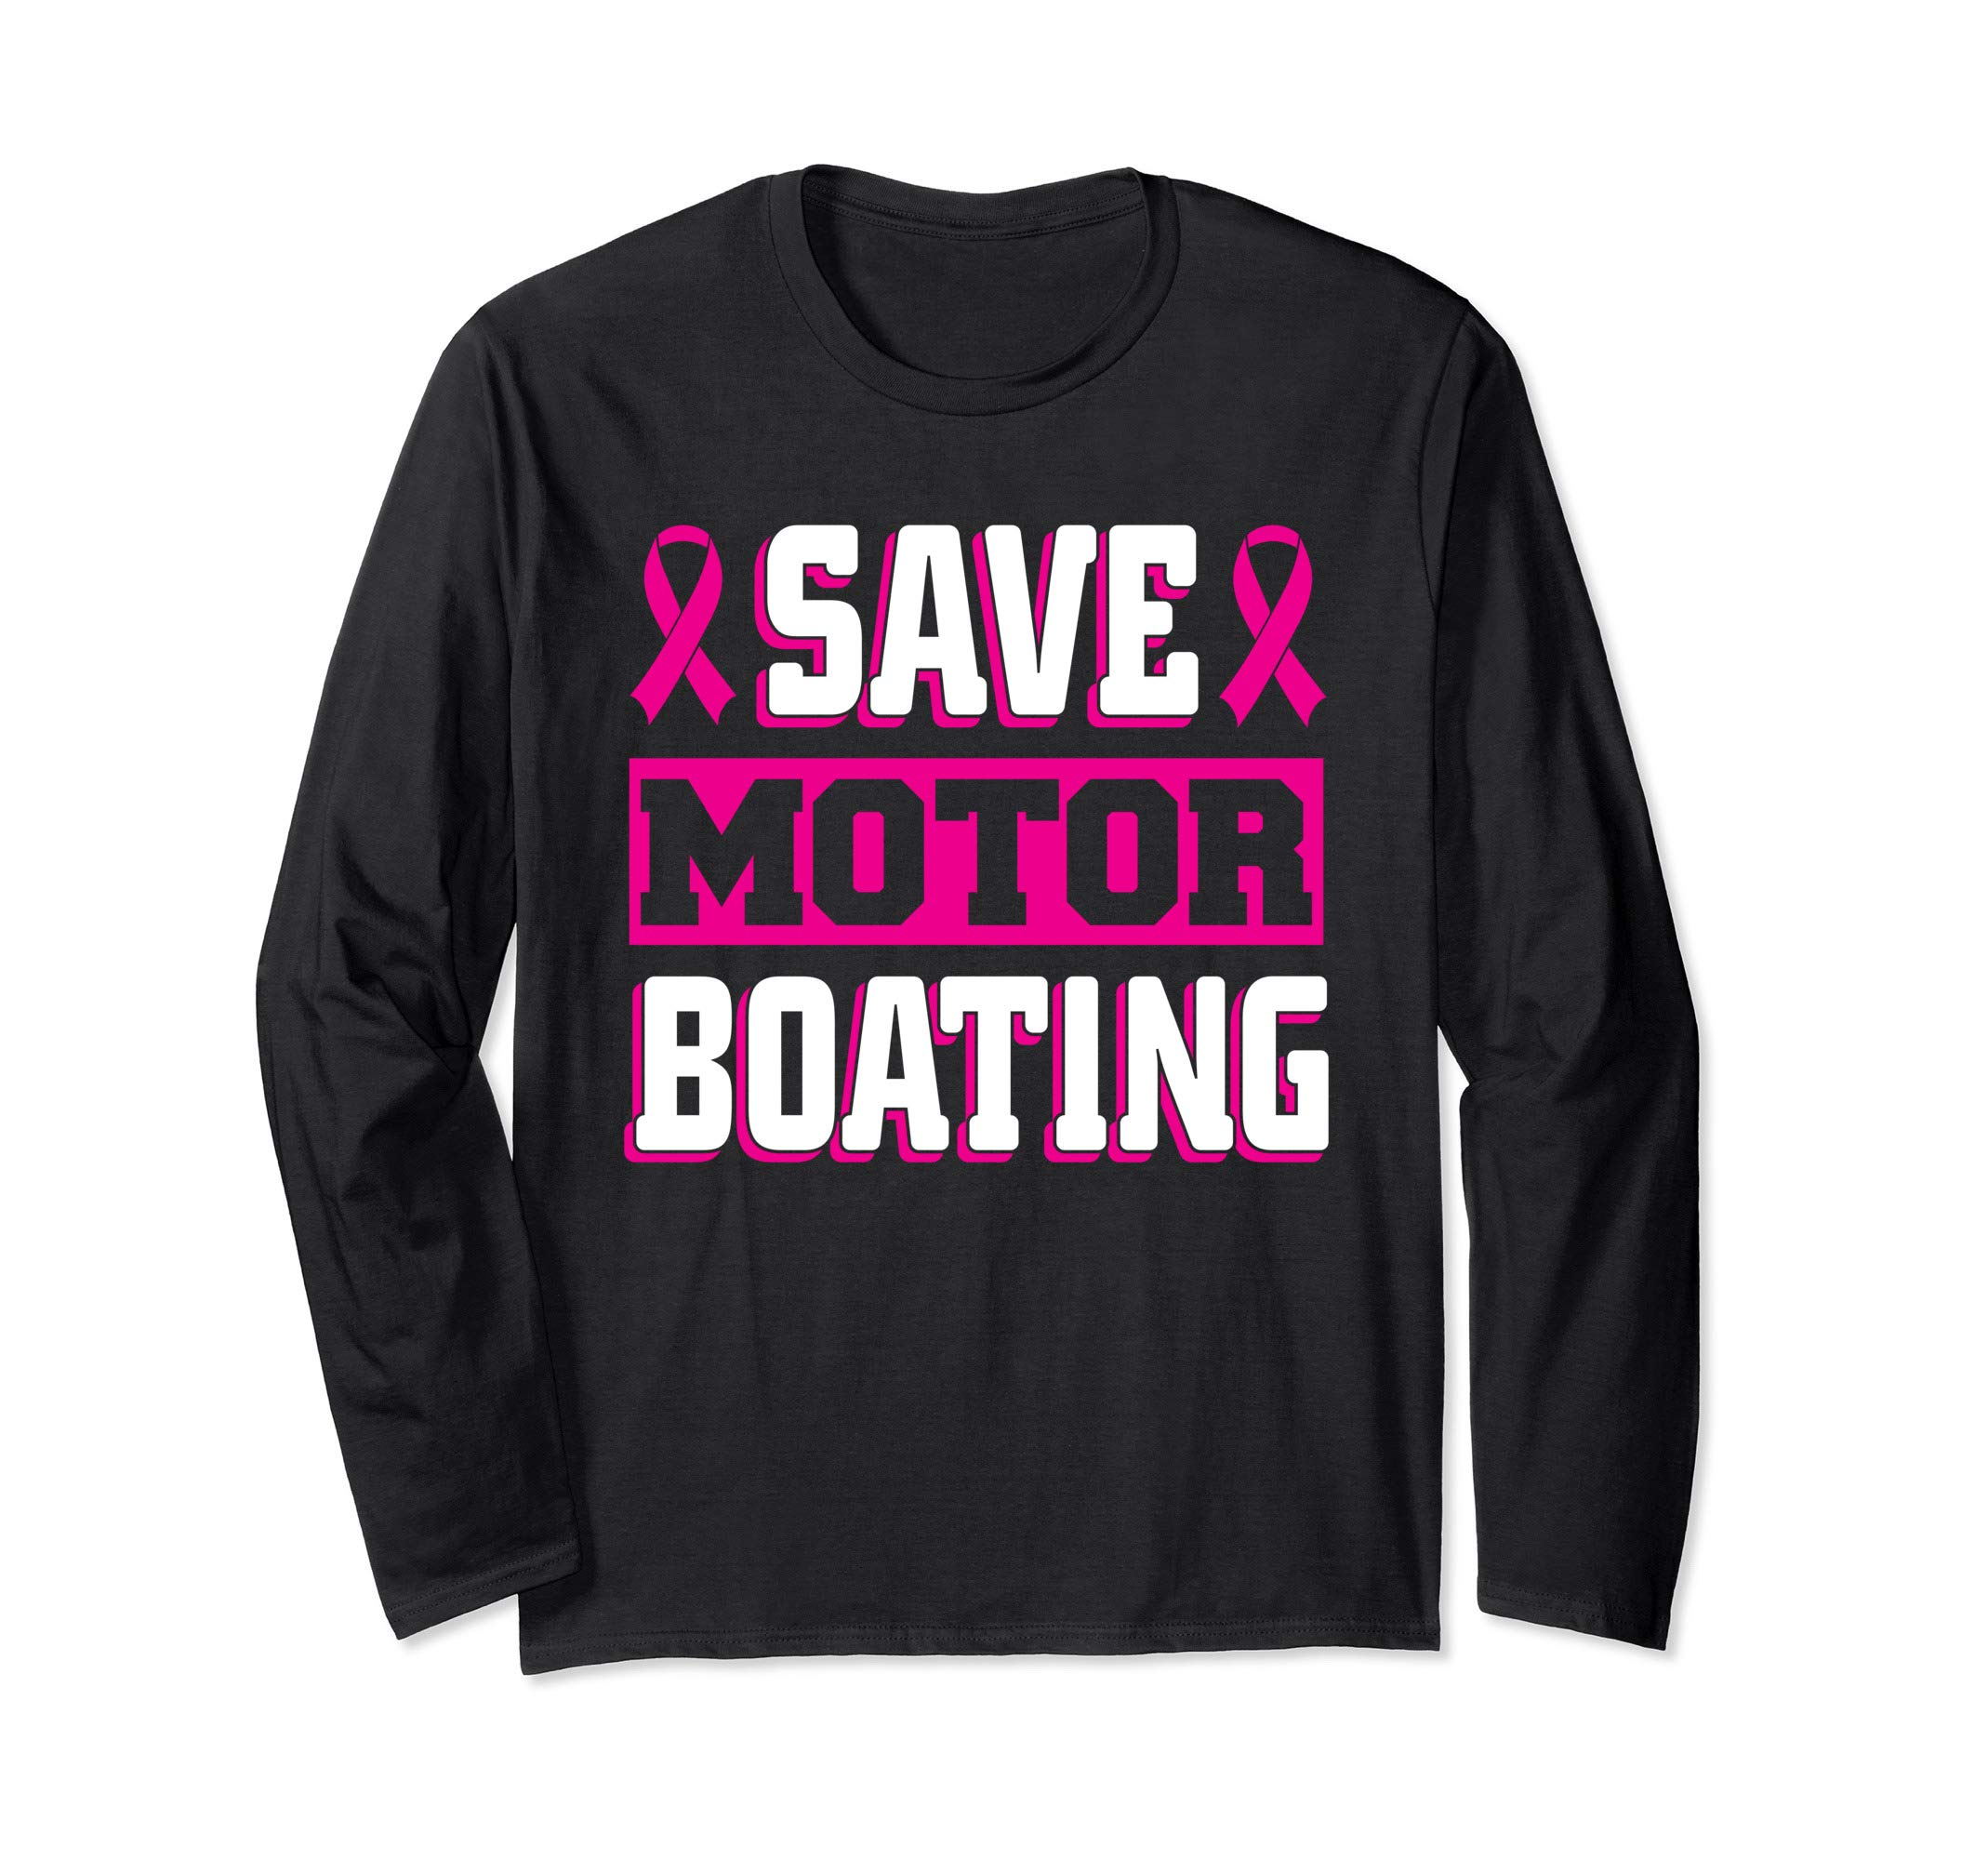 Save Motor Boating tee Breast cancer Awareness Long Sleeve T-Shirt by Breast cancer awareness Graphics.